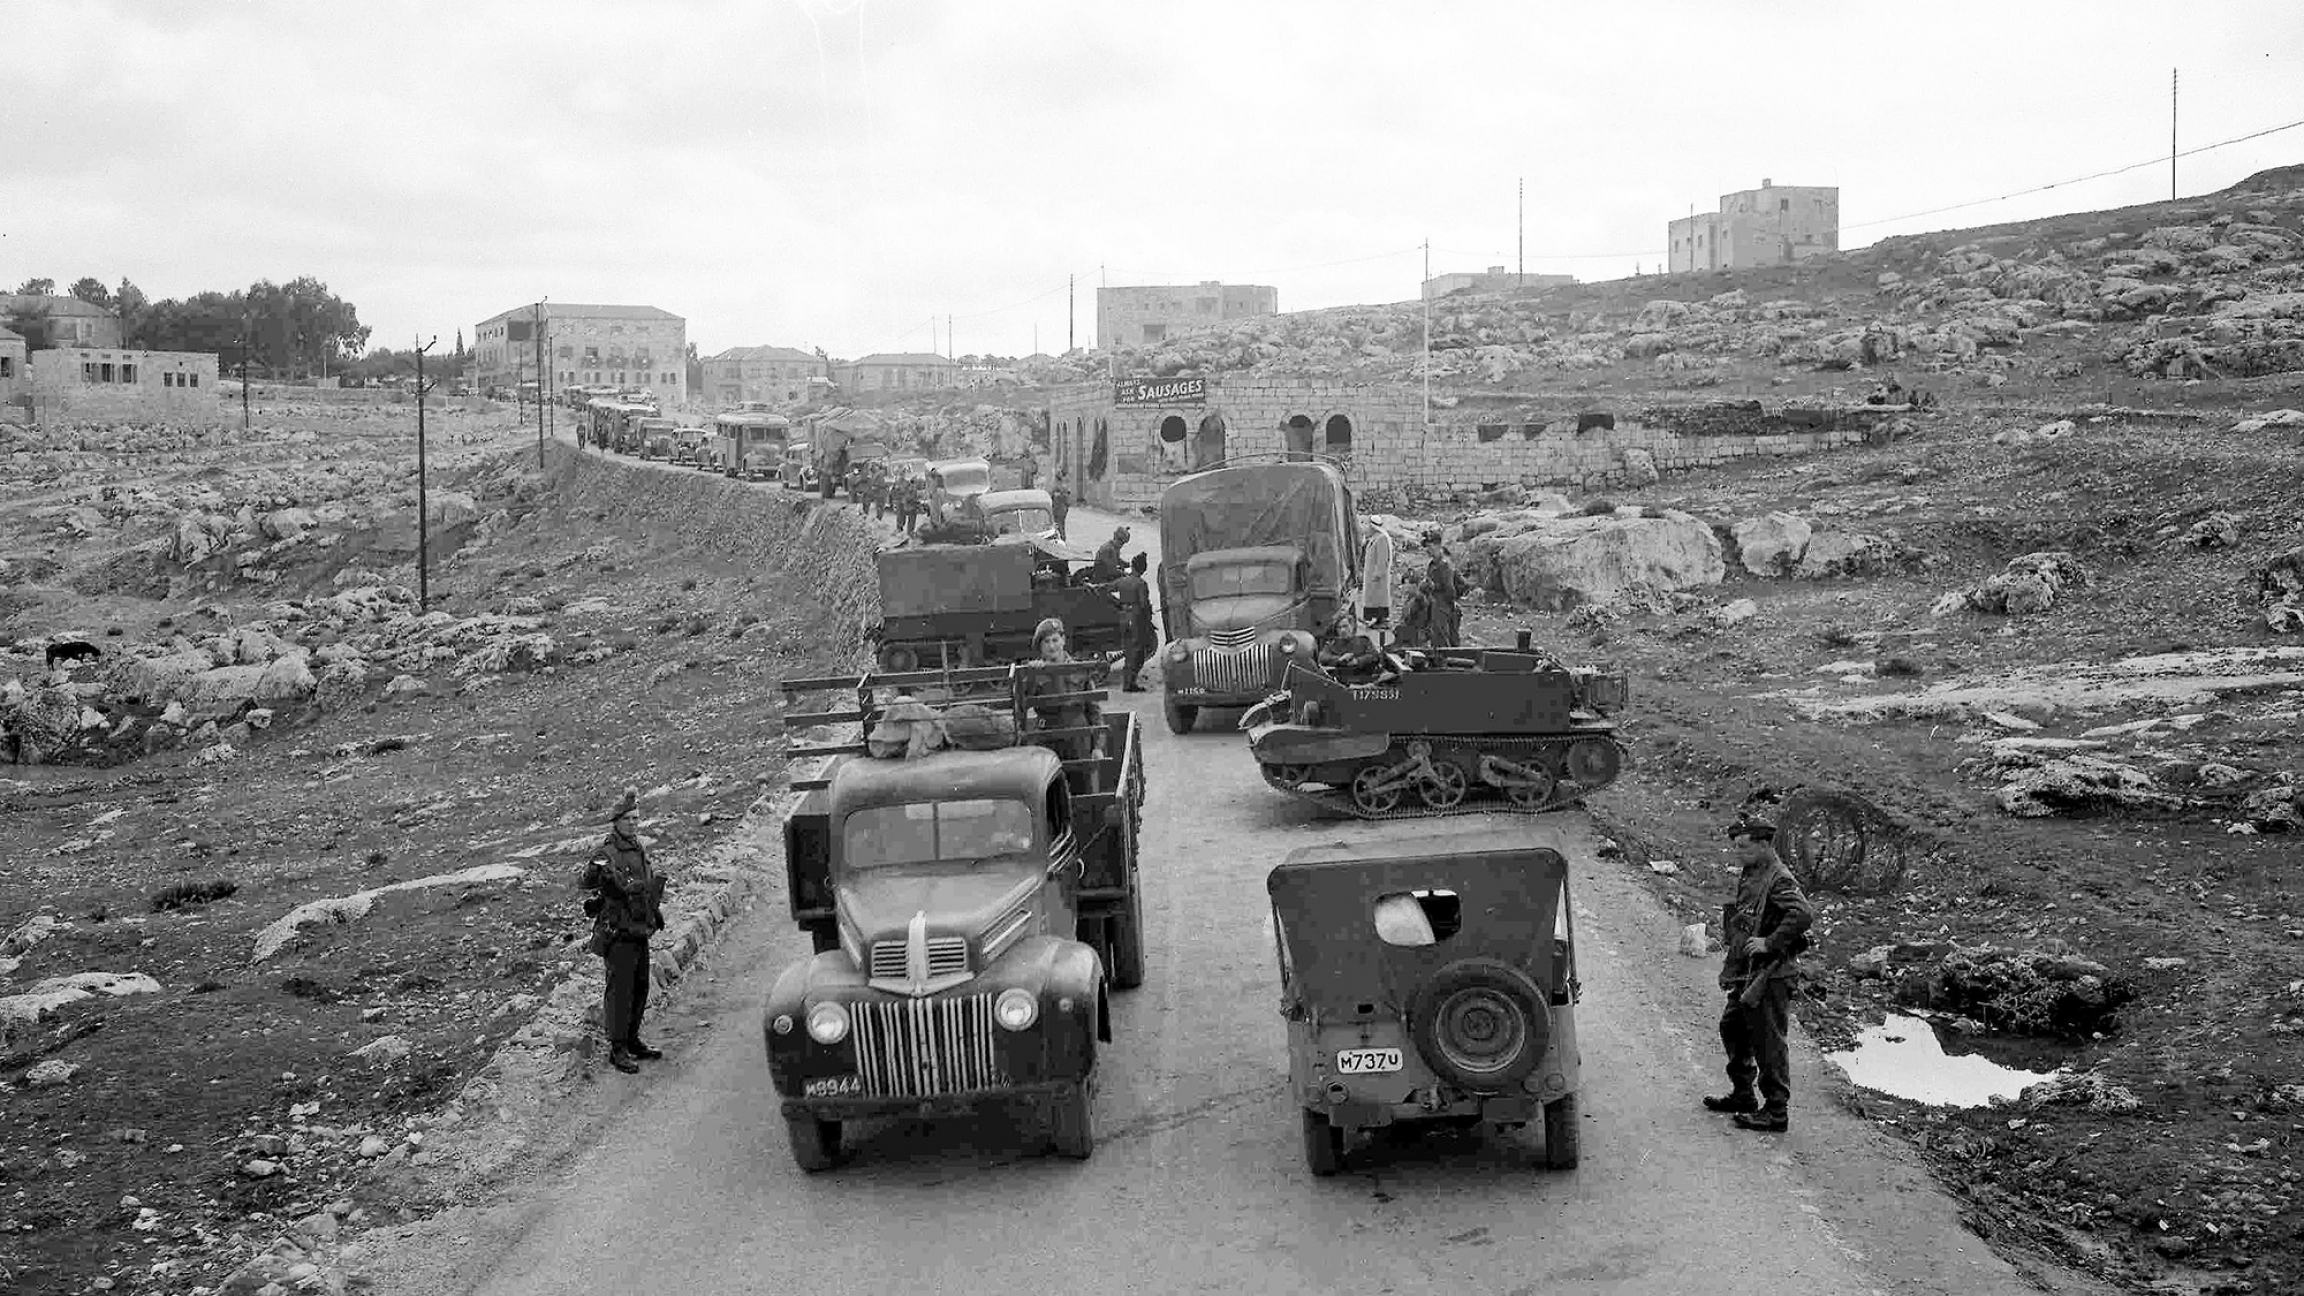 A line of vehicles, stretching for almost a mile, waits to pass through a road block on the main road from Jerusalem to Tel Aviv, Feb. 6, 1947. The road block is manned by members of the Royal Irish Fusiliers.